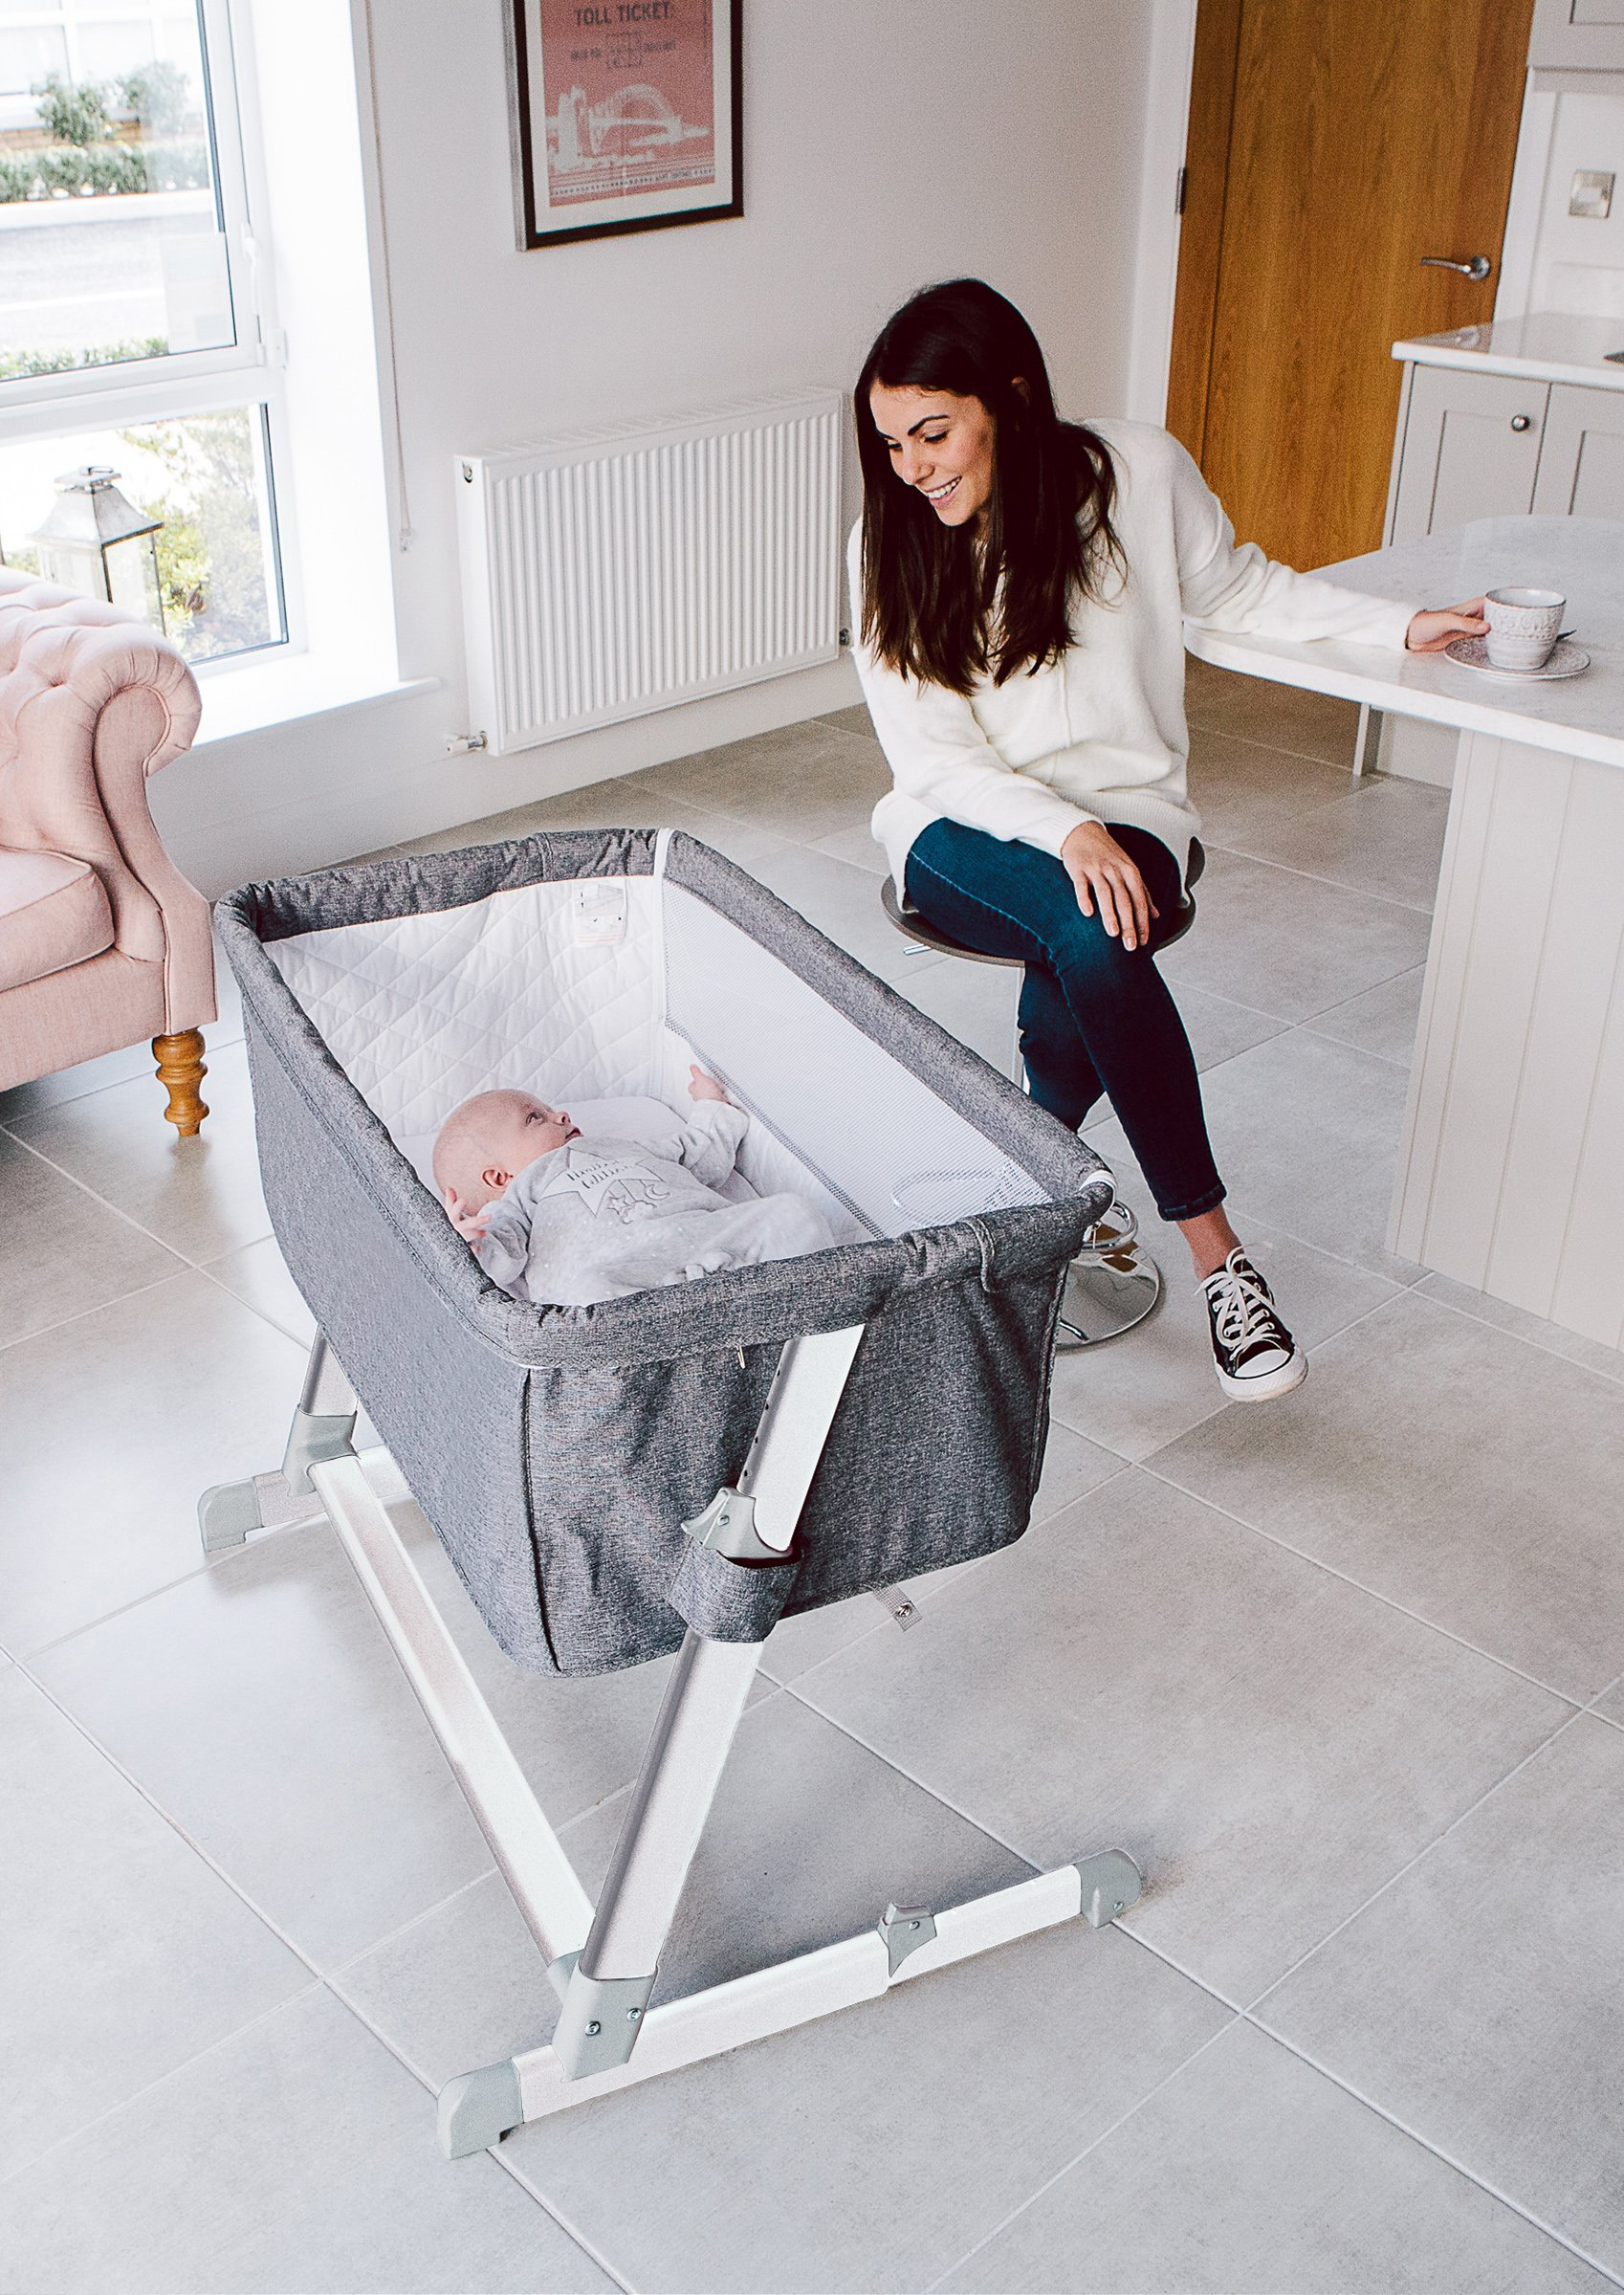 Babylo Cozi Sleeper  Complete with 2 Free Sheets worth £25 Pounds. Removable lining for easy cleaning. Storage Bag Included. European & UK Standard EN1130. Free from Chemicals.  Mattress Fatigue Test BS1877 Certified. Comes fitted with 2 wheels for easy manoeuvrability between rooms. Zip down side panel when fixing to the parents' bed for side-sleeping. Multi-height positions, individually adjustable on each side. Can be set inclined to help with congested breathing and reflux. Use from birth to 9kgs. Stop using when child can sit, kneel or pull themselves up unaided.  Fits both frame and divan beds as the design allows the crib to move flush with bed. Two fastening clip-on straps to hold crib snug against bed. As baby grows you can move it away from the bed and use as a normal crib. Removable and washable lining. Soft removable mattress included. 2 free sheets included. Soft quilted sides with mesh for visibility and ventilation. Easy manoeuvrability, assembly and use. Mattress size 87lx46wx4d. Handy storage bag for transportation. 3